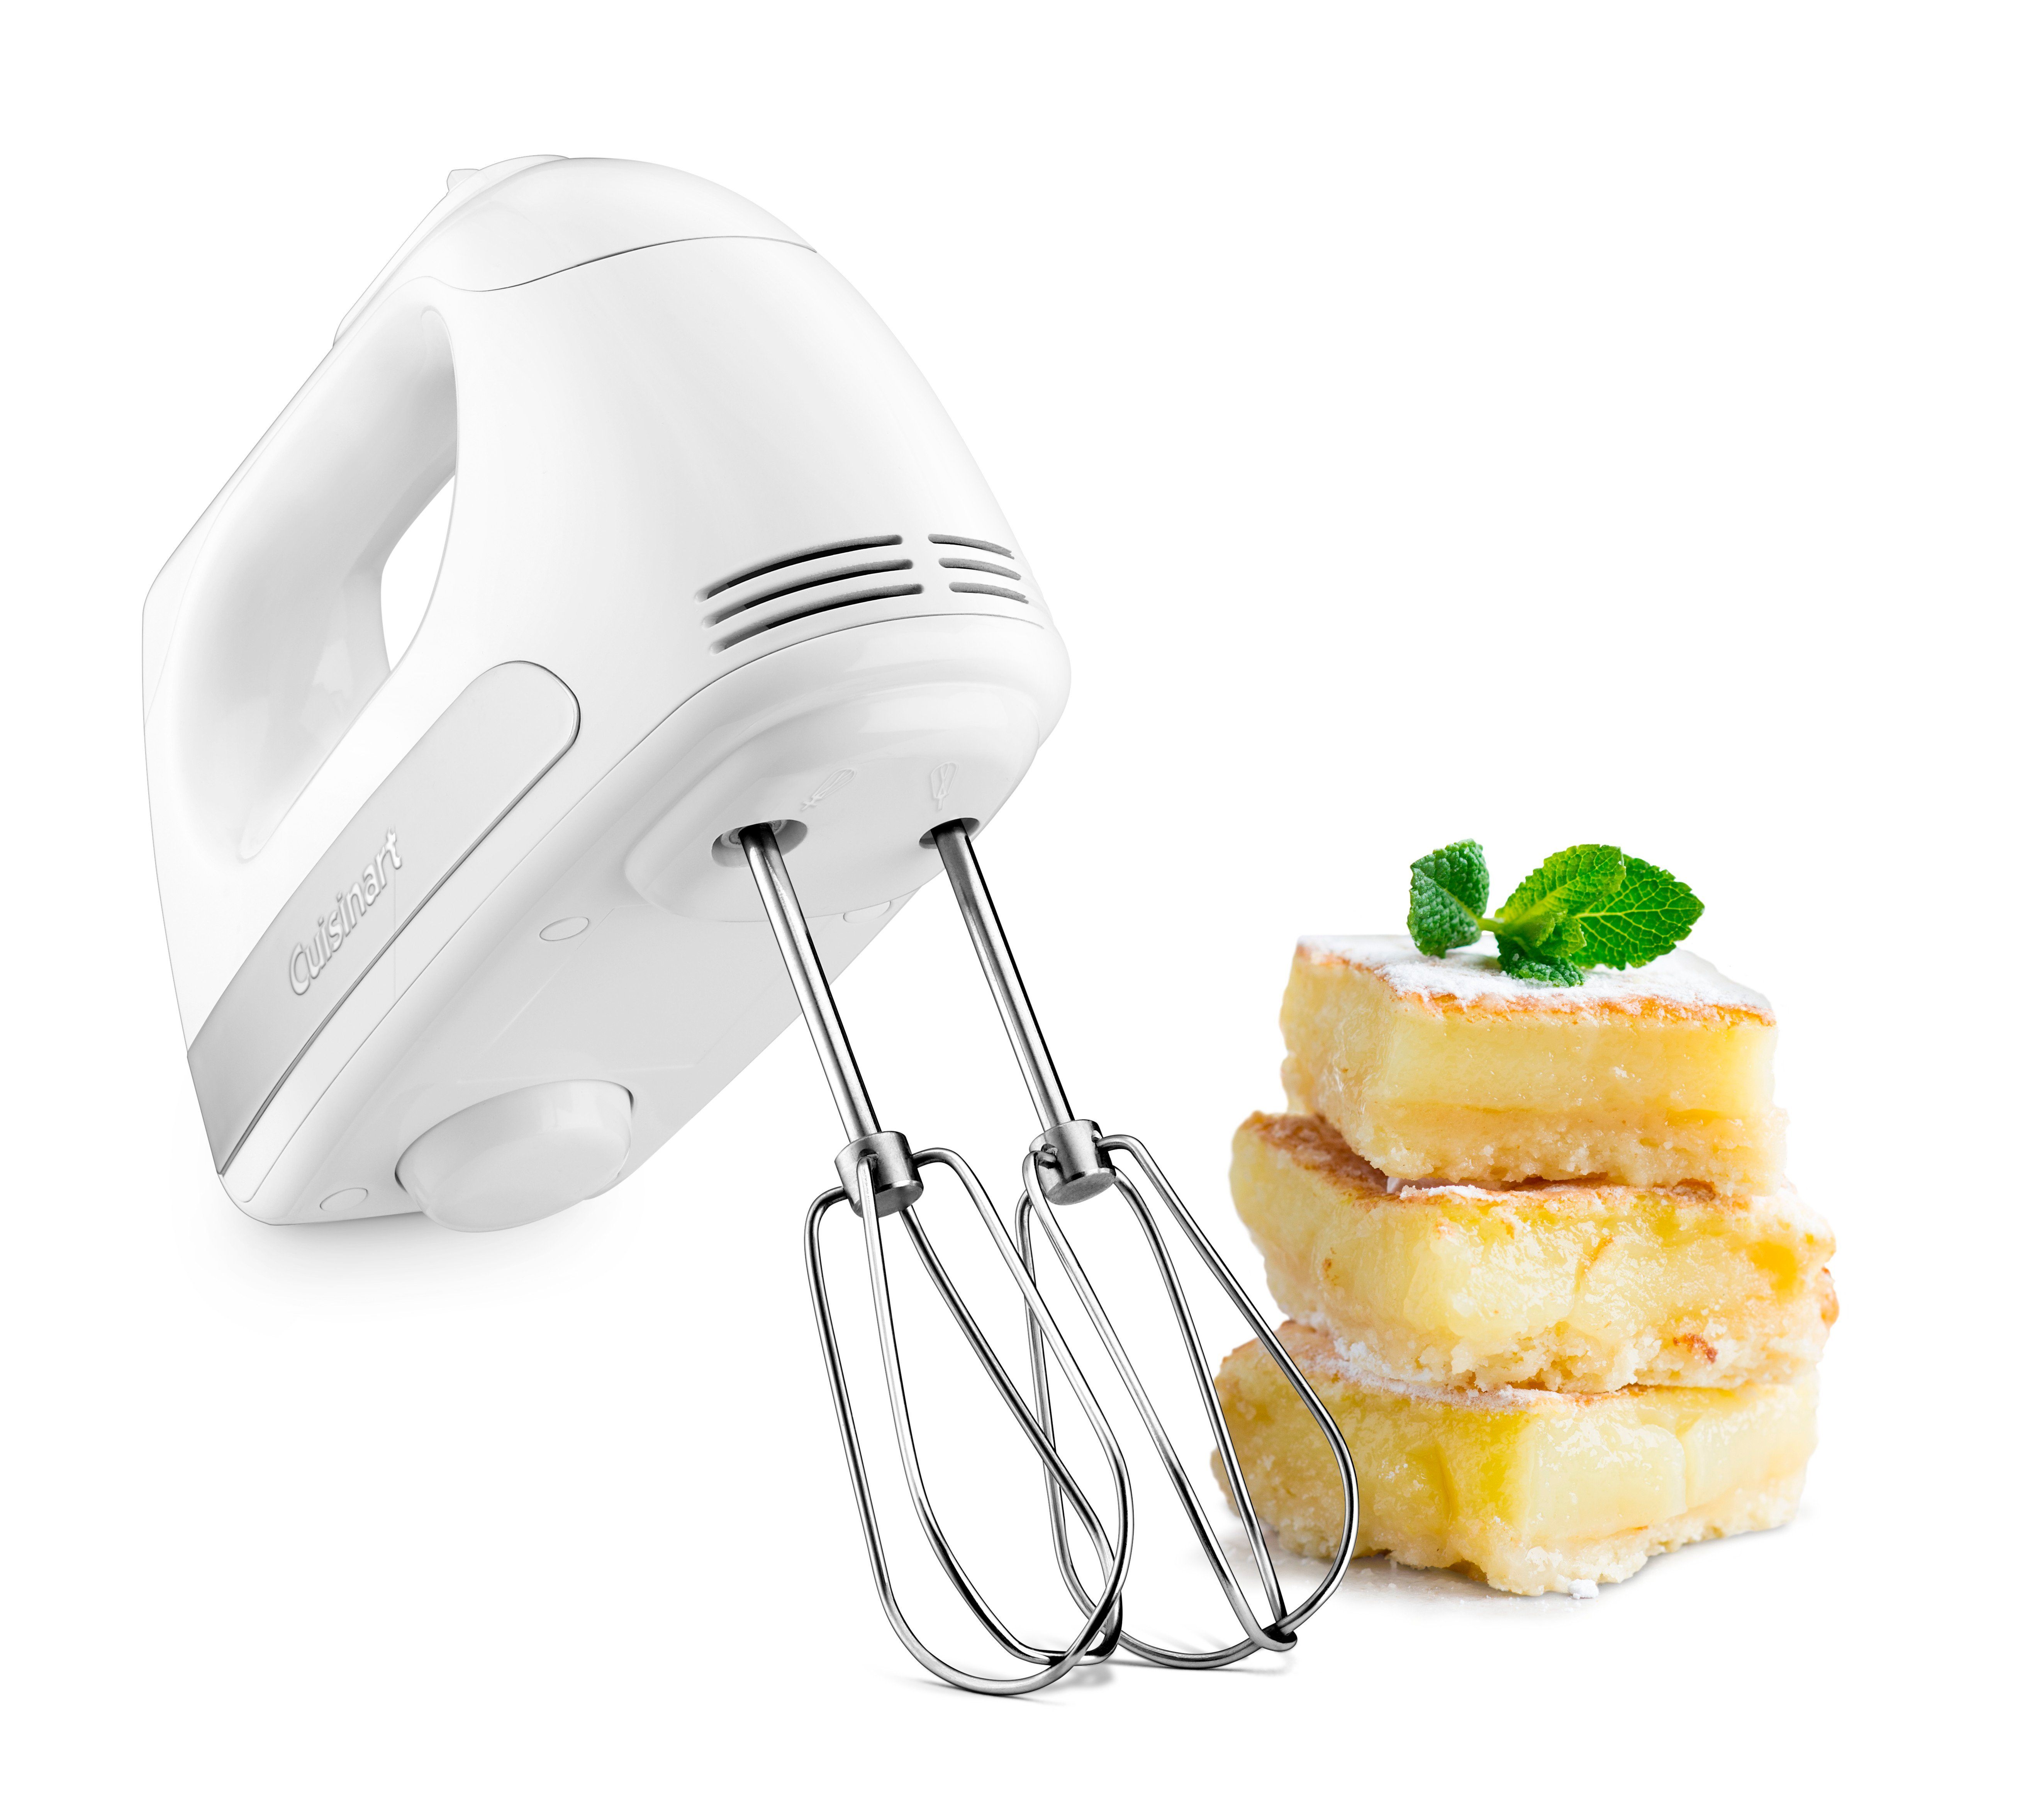 Power Advantage® 3-Speed Hand Mixer